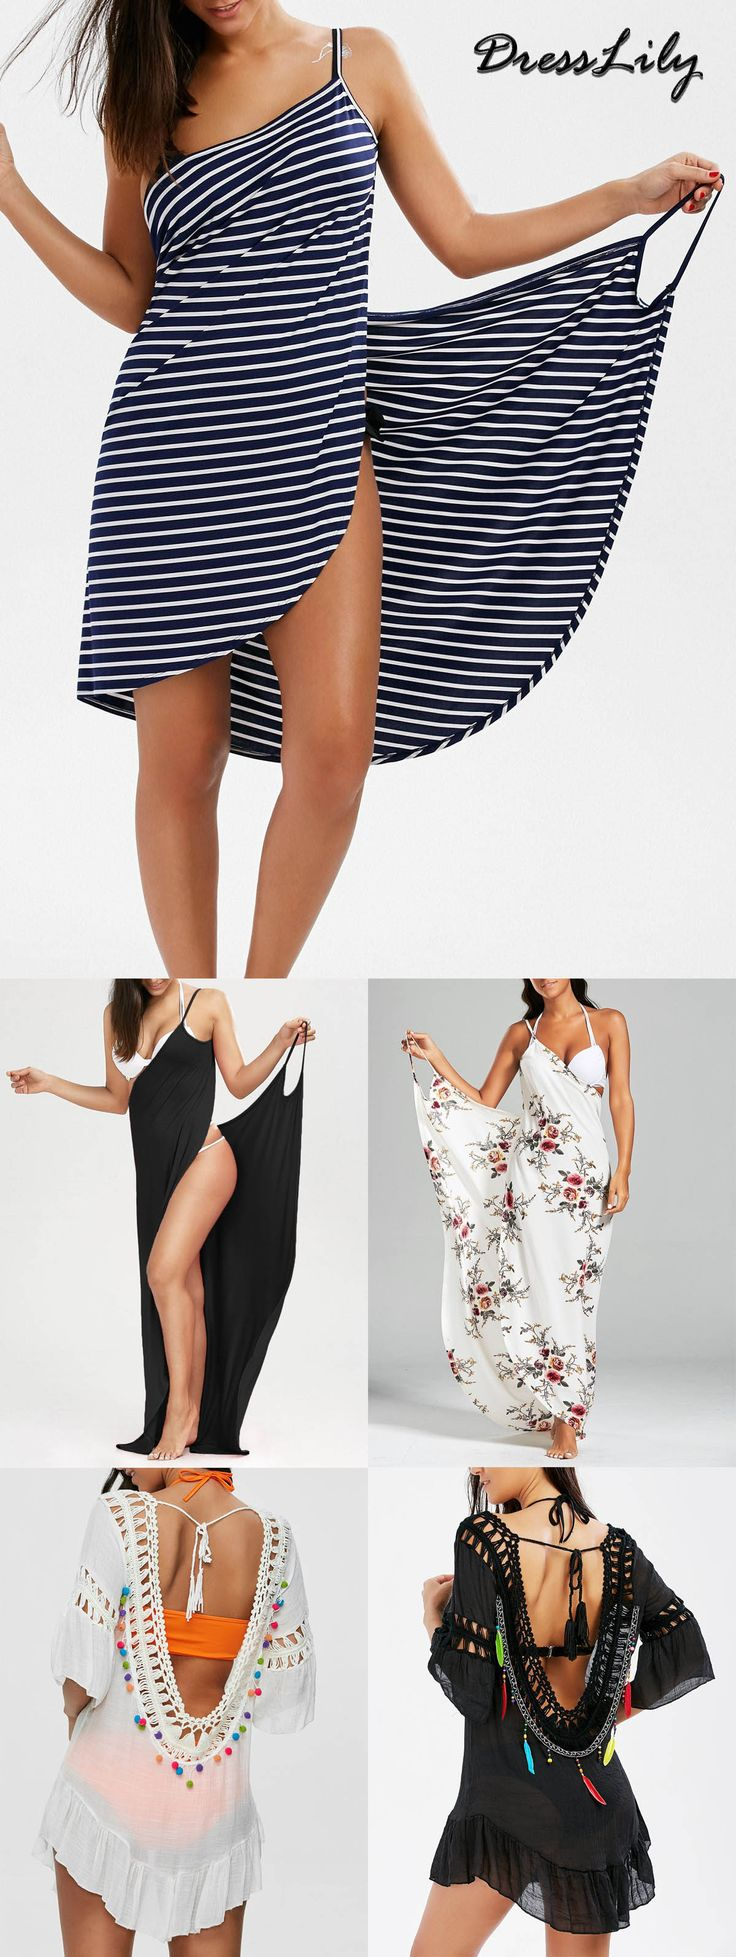 Buy the latest stylish womens cover up at a cheapest price with high quality on dresslily.com | FREE SHIPMENT WORLDWIDE | dresslily,dresslily.com,dresslily swimsuit,dresslily bathing suit,cover up,swimwear,swimsuit,bathing suit,holiday style,beach outfit,beach dress | #dresslily #coverup #swimsuit #dress